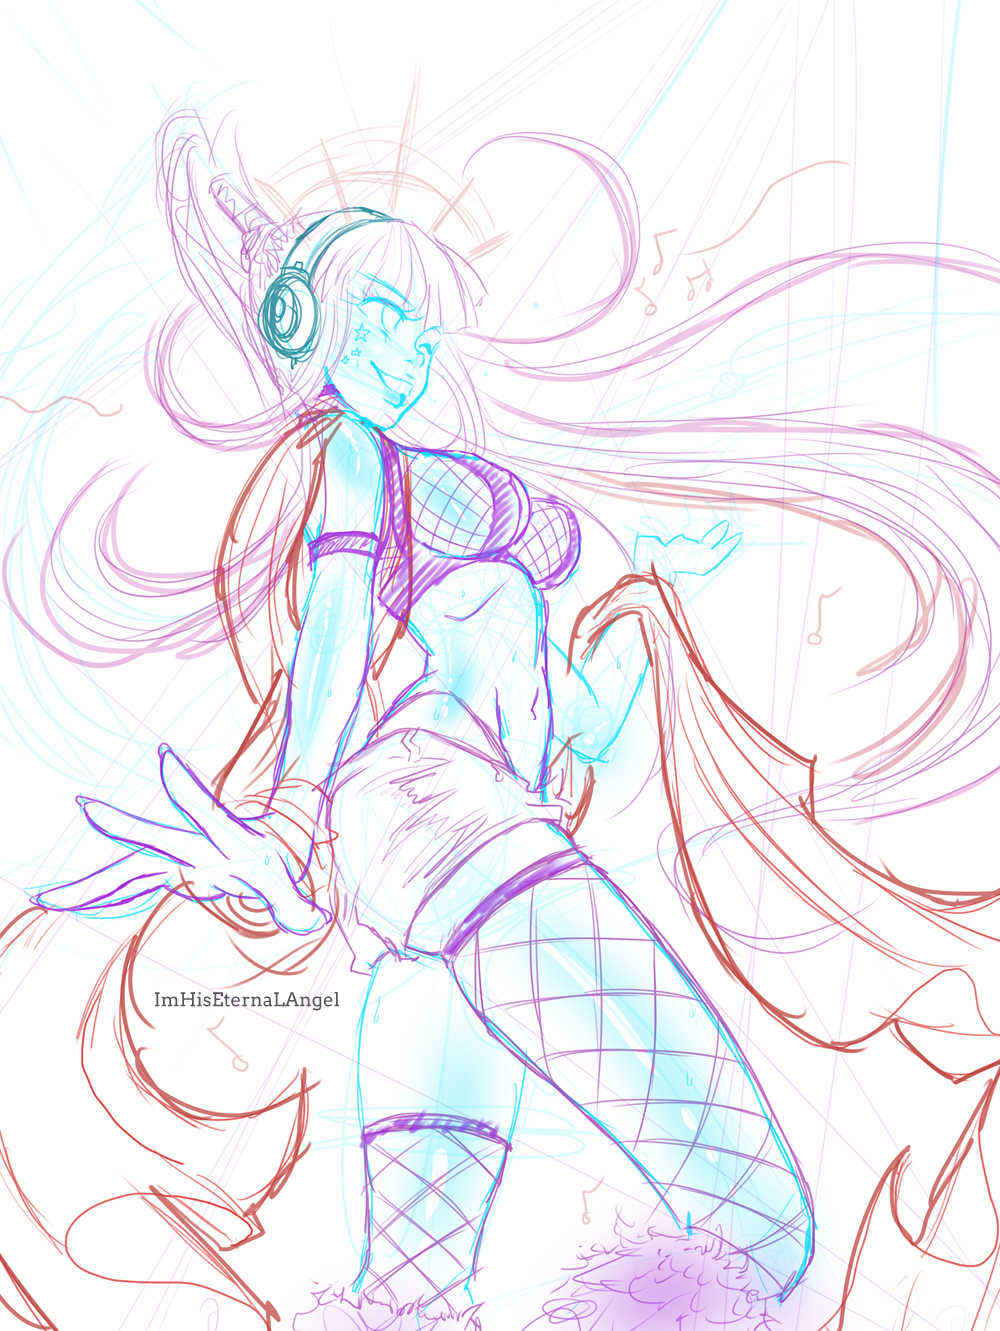 Sketch - Raver Girl by EmeraldAngelStudio